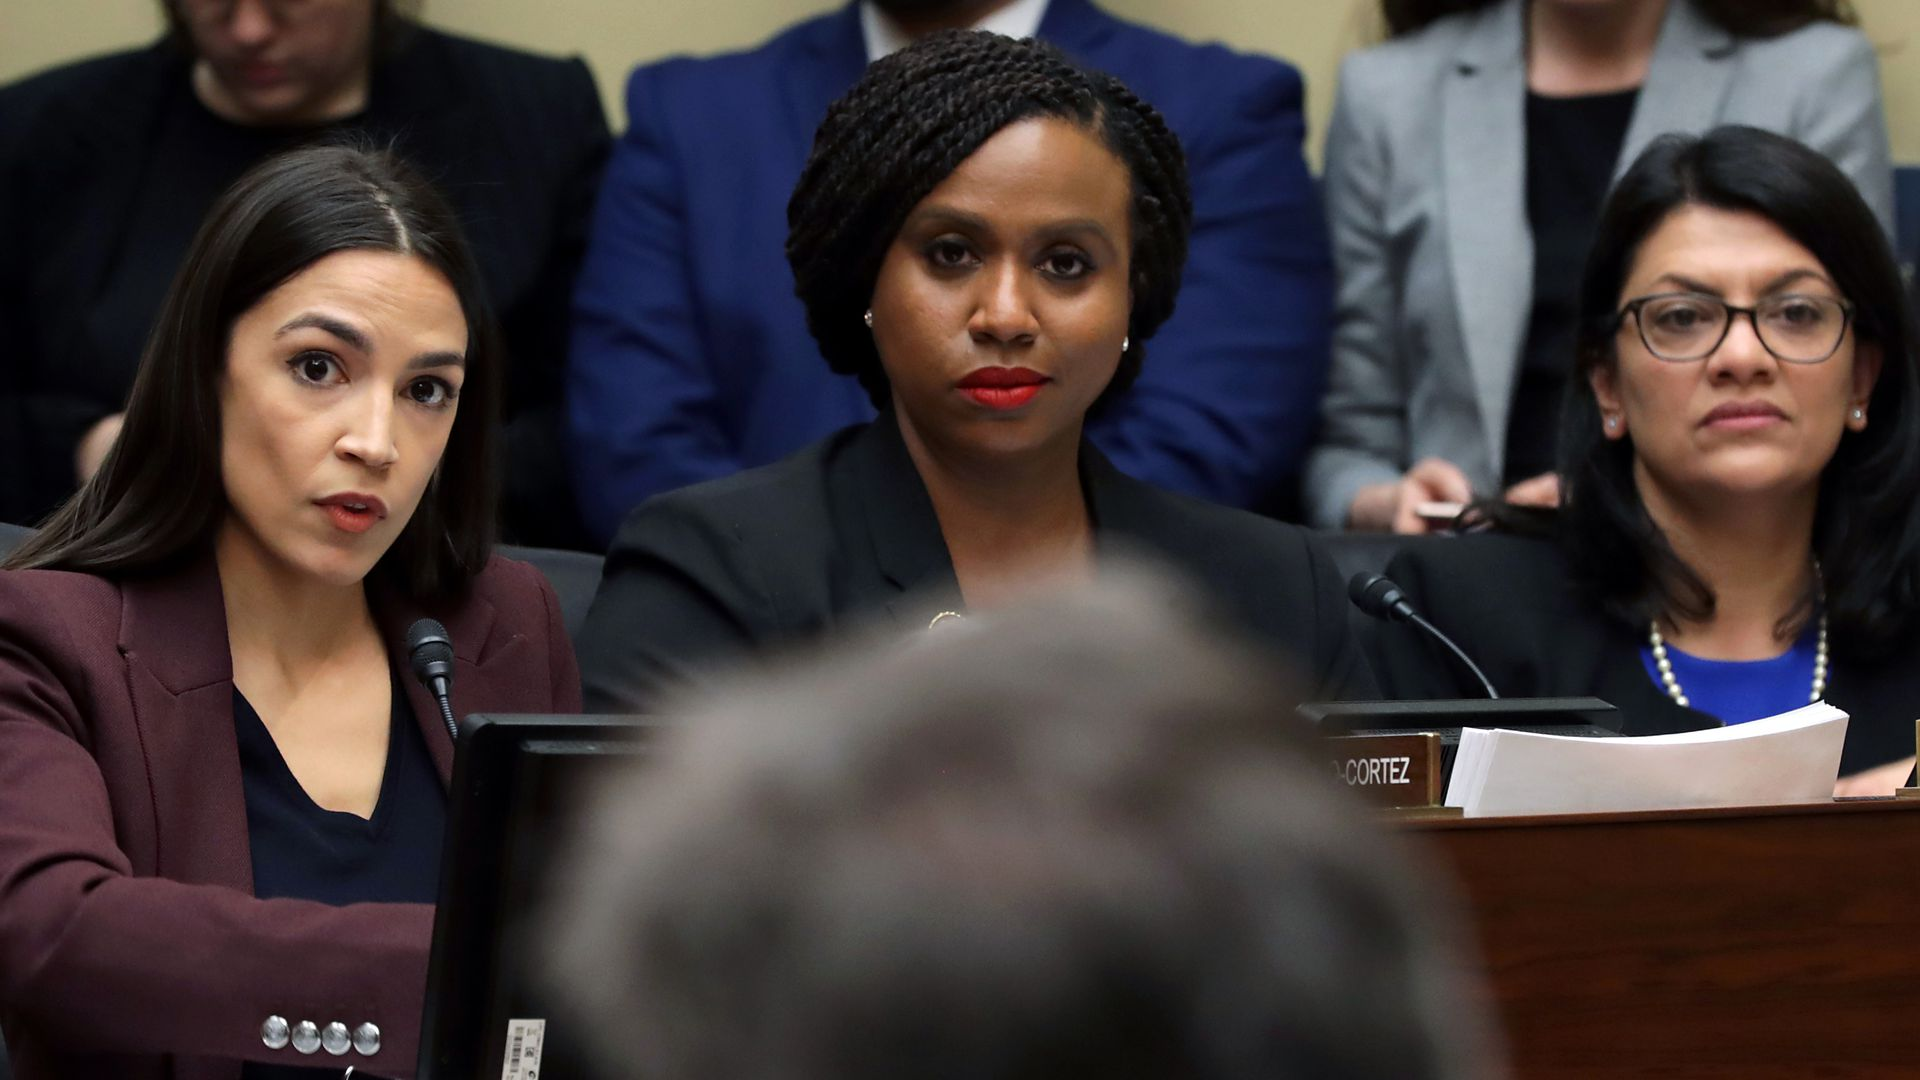 Rep. Alexandria Ocasio-Cortez (D-NY), Rep. Ayanna Pressley (D-MA) and Rep. Rashida Tlaib (D-MI) listen in the House Oversight Committee on Capitol Hill February 27, 2019 in Washington, DC